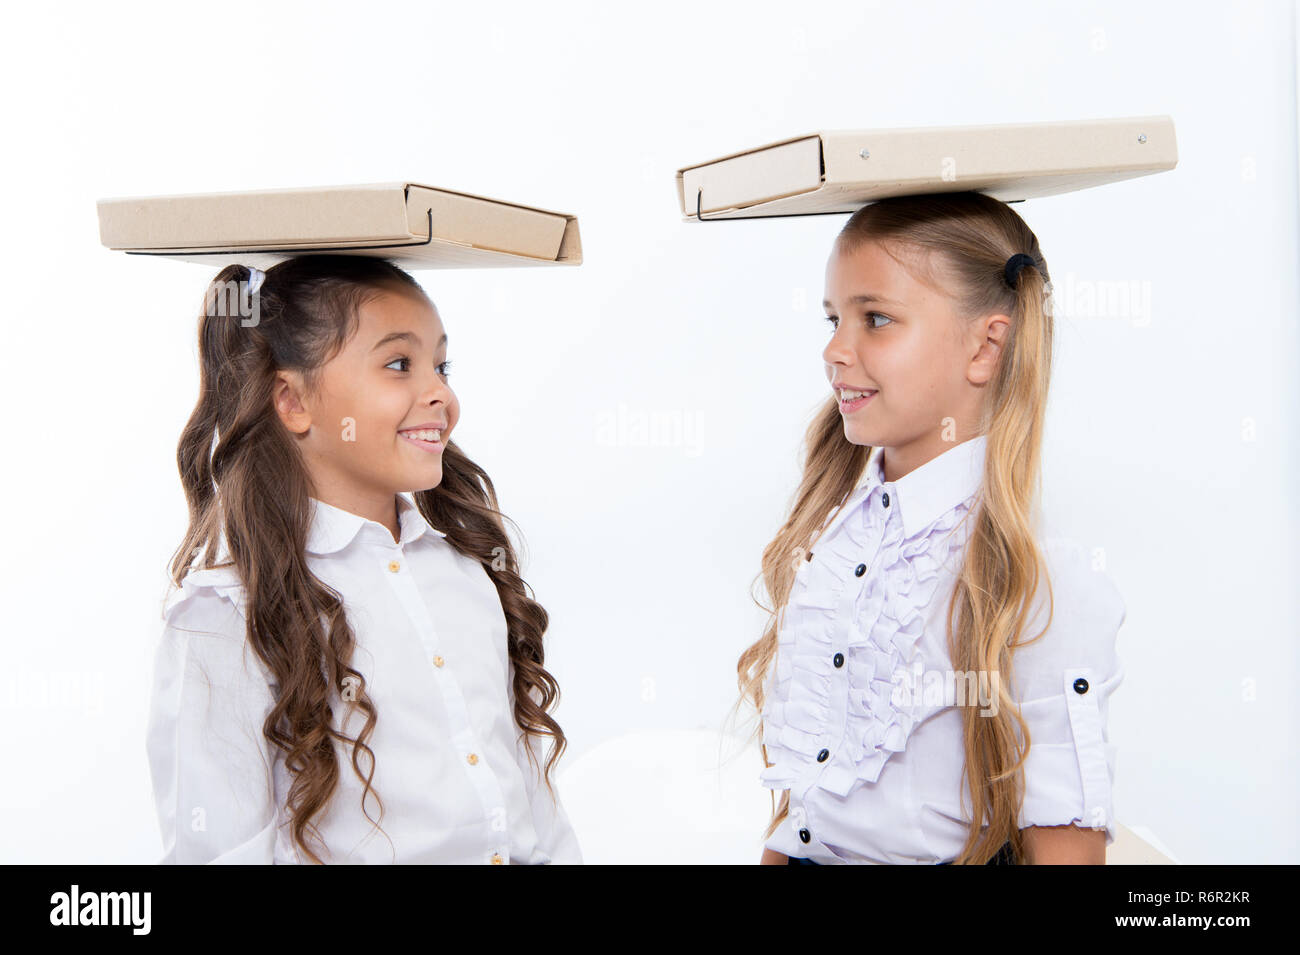 Find balance. Schoolgirls with cute pony tails hairstyle carry folders on heads. Perfect schoolgirls with tidy fancy hair and proper posture carry folders on heads. Balance and burden of knowledge. - Stock Image